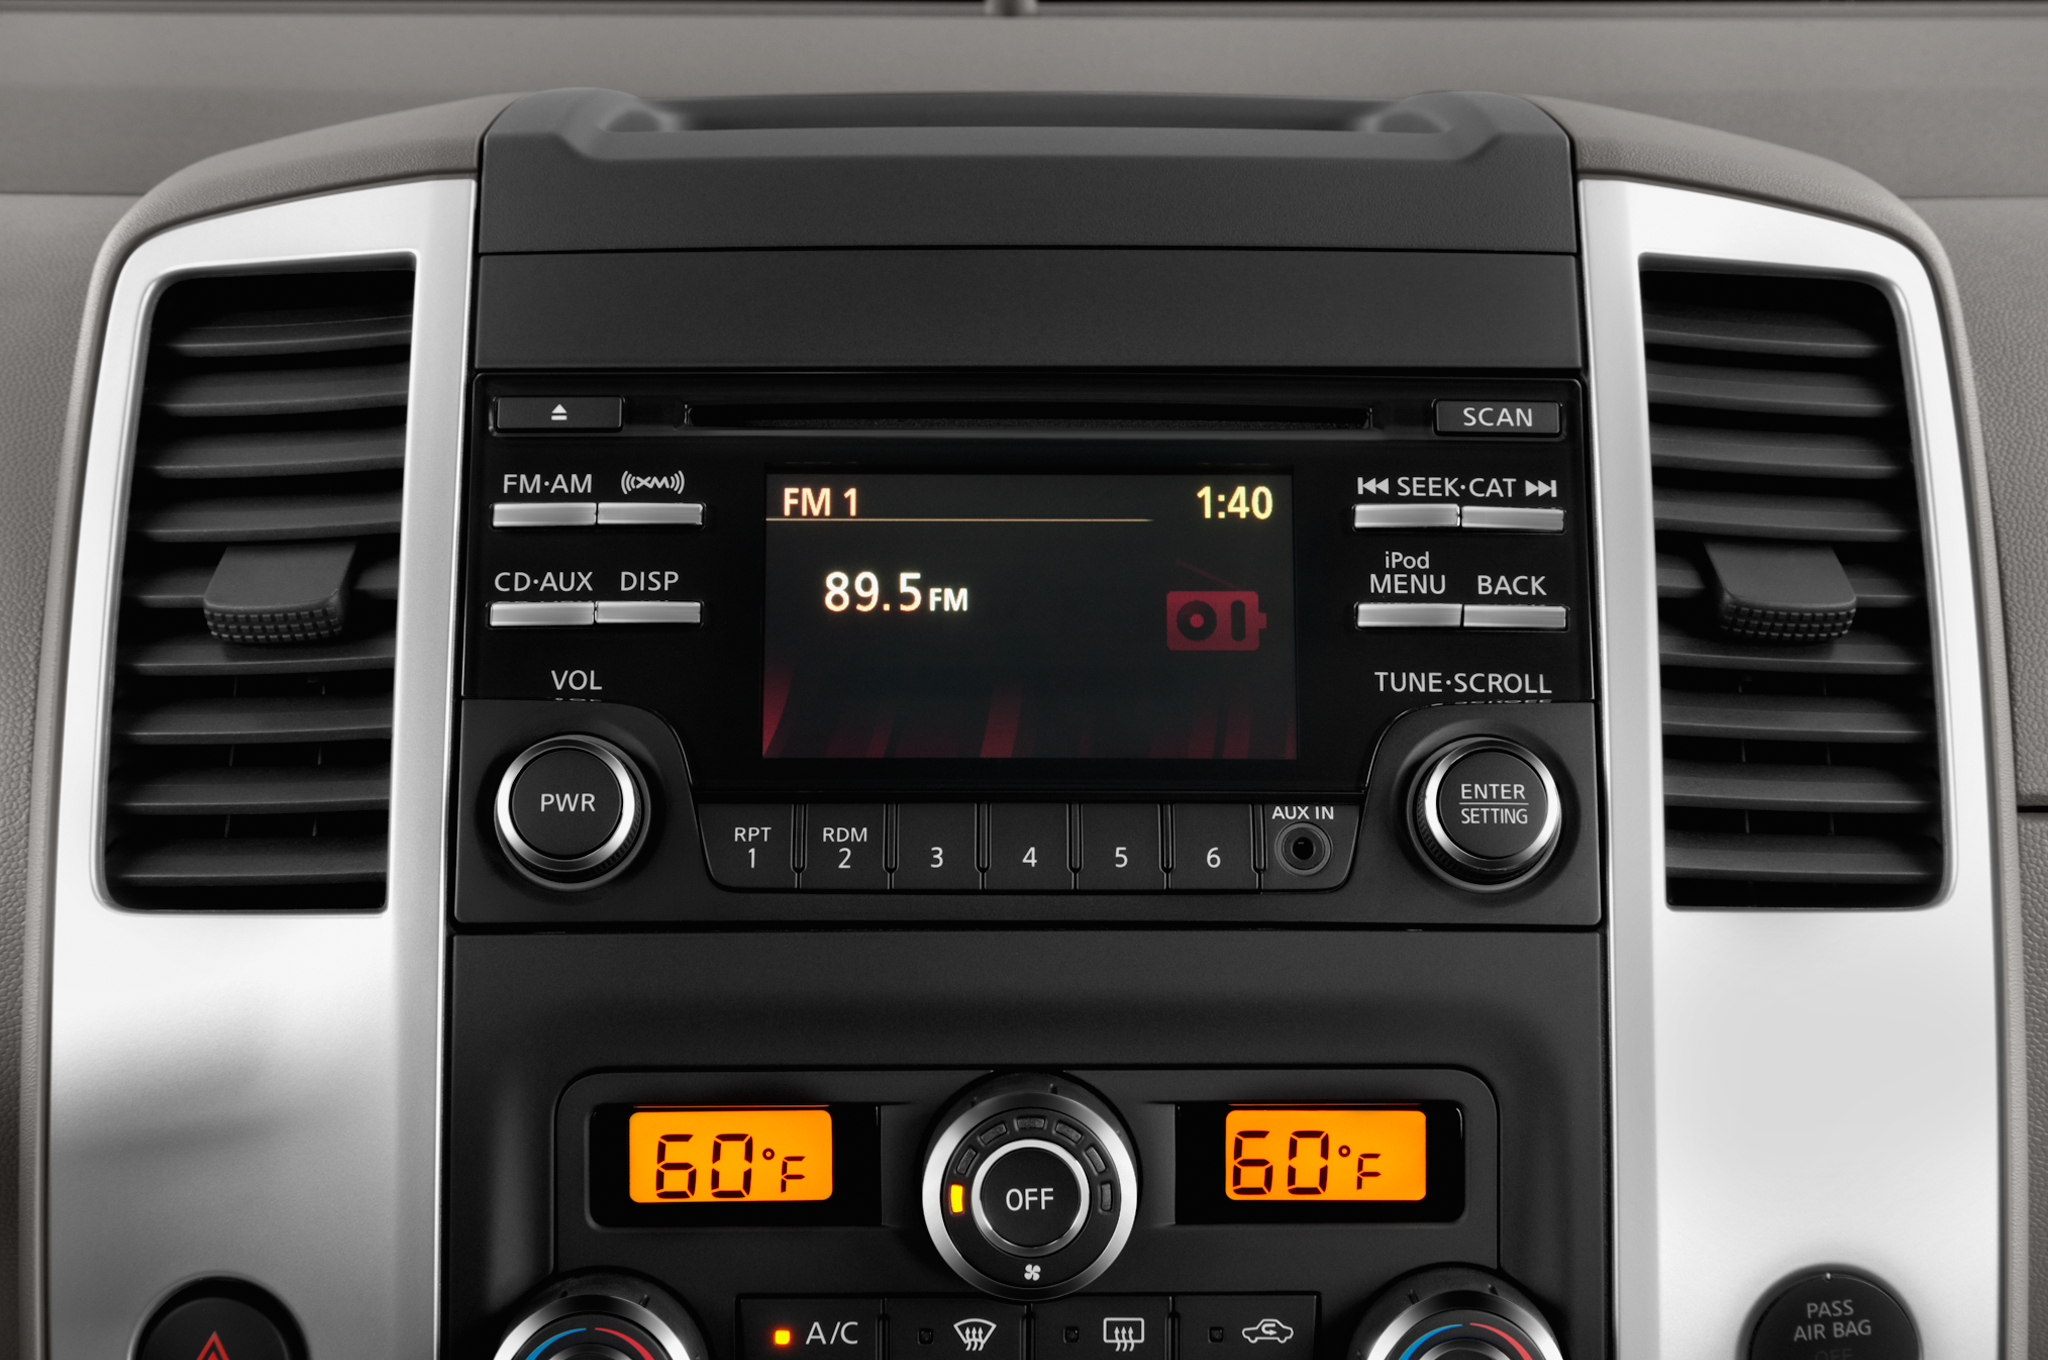 2007 Nissan Xterra Radio Wiring Library 2013 Frontier Stereo Diagram 2015 To Cost 18 850 And 24 520 Respectively Rh Automobilemag Com 2016